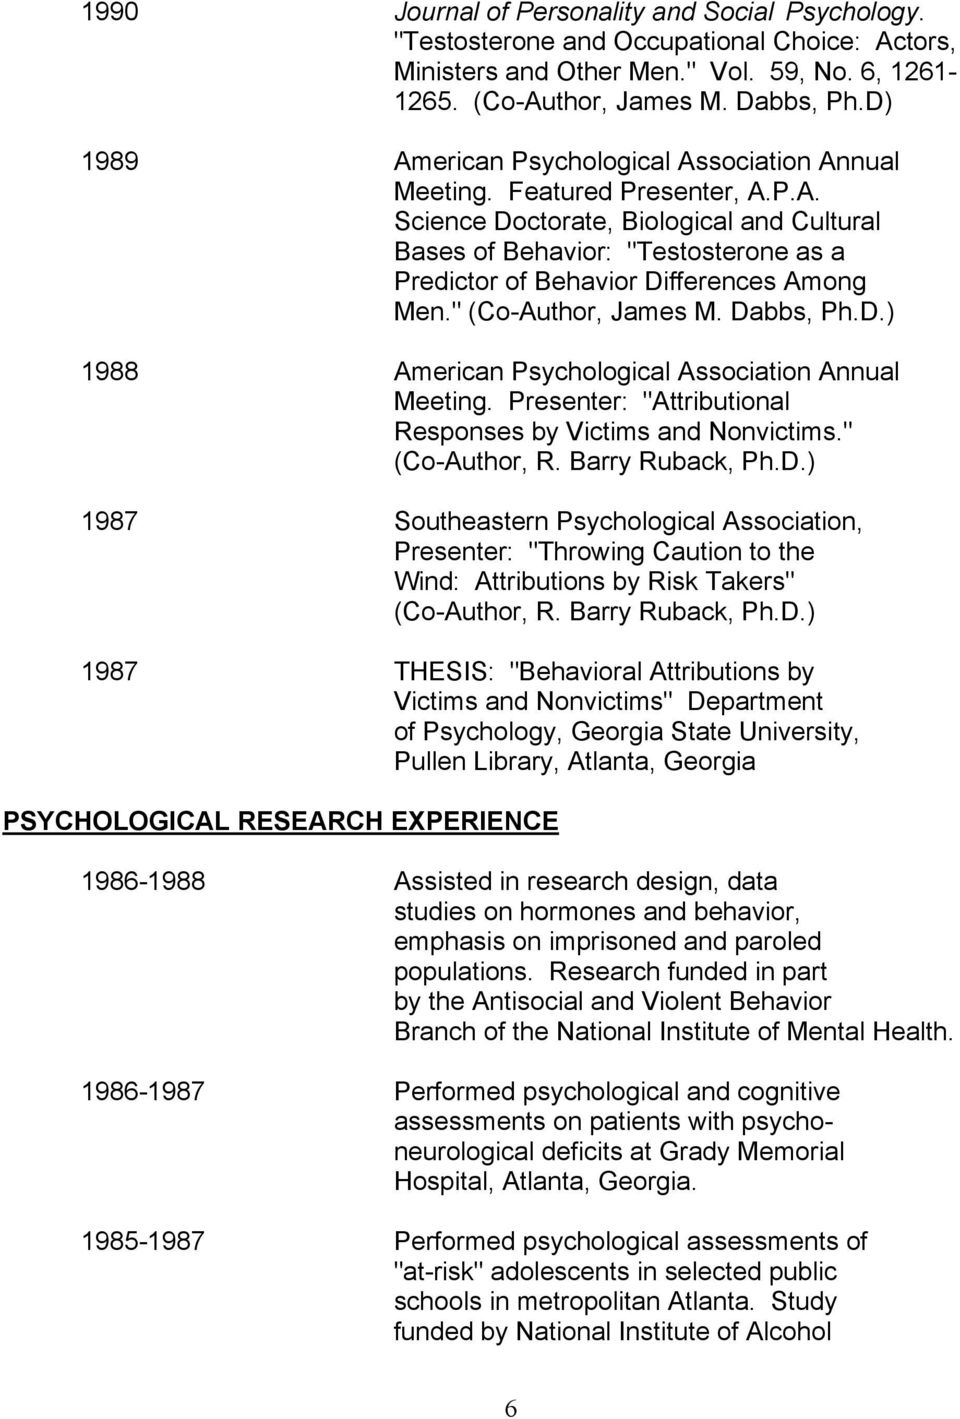 """ (Co-Author, James M. Dabbs, Ph.D.) 1988 American Psychological Association Annual Meeting. Presenter: ""Attributional Responses by Victims and Nonvictims."" (Co-Author, R. Barry Ruback, Ph.D.) 1987 Southeastern Psychological Association, Presenter: ""Throwing Caution to the Wind: Attributions by Risk Takers"" (Co-Author, R."